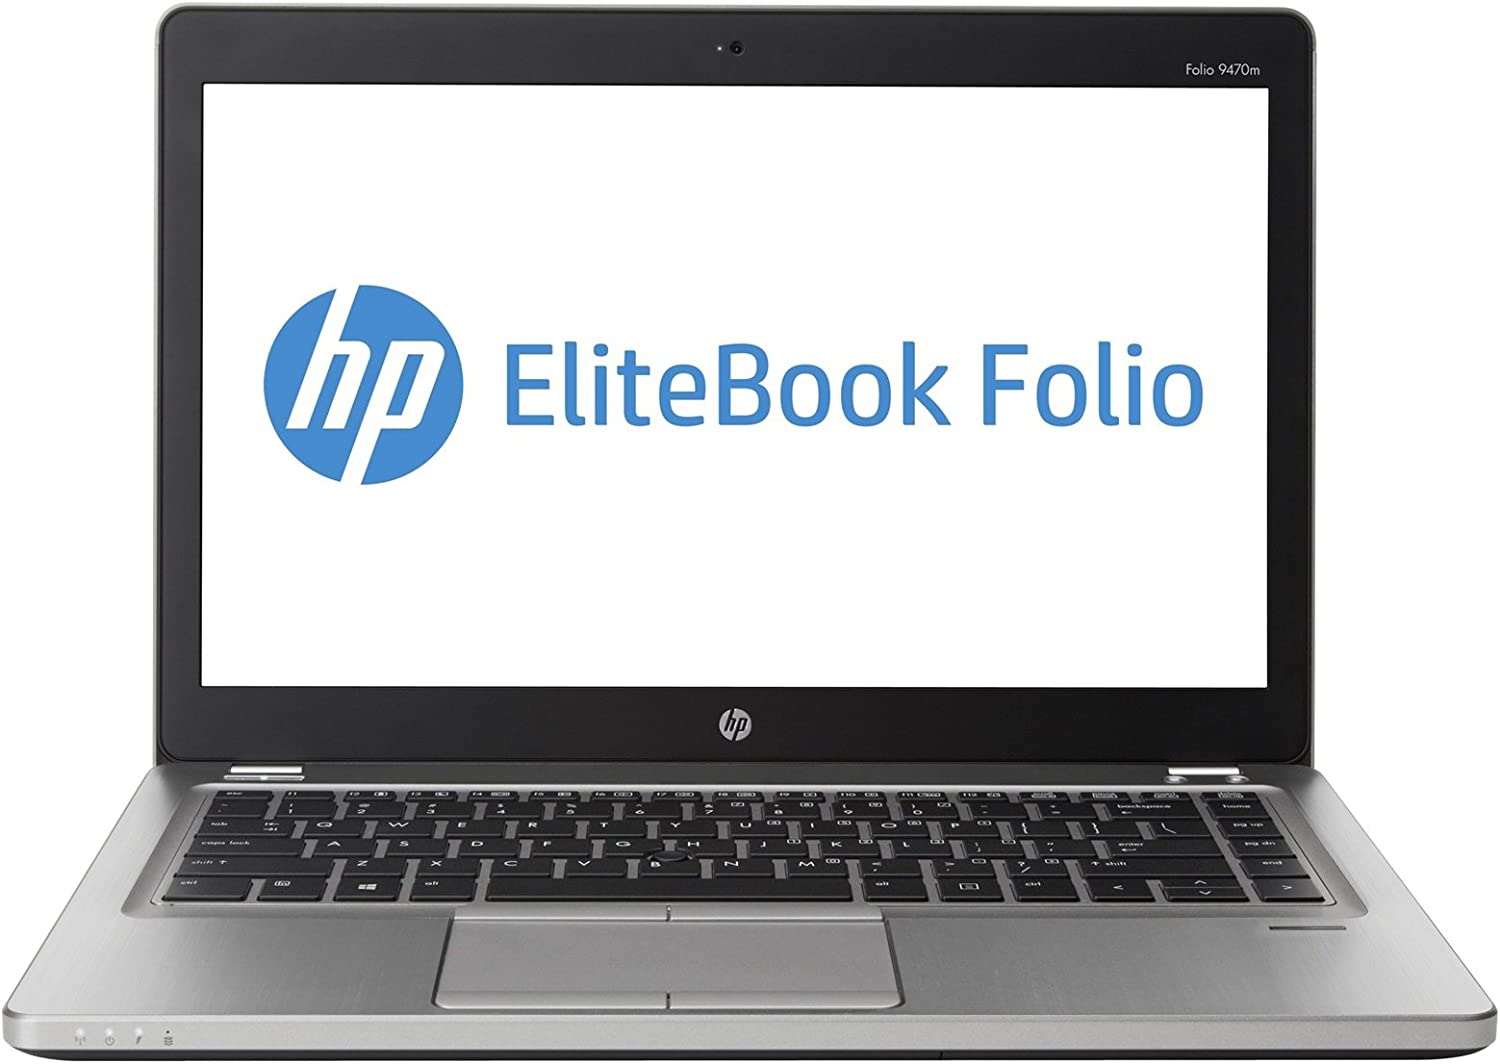 HP EliteBook Folio 9470M 14in Intel Core i5-3427U 1.8GHz 8GB 180GB SSD Windows 10 Pro (Renewed)